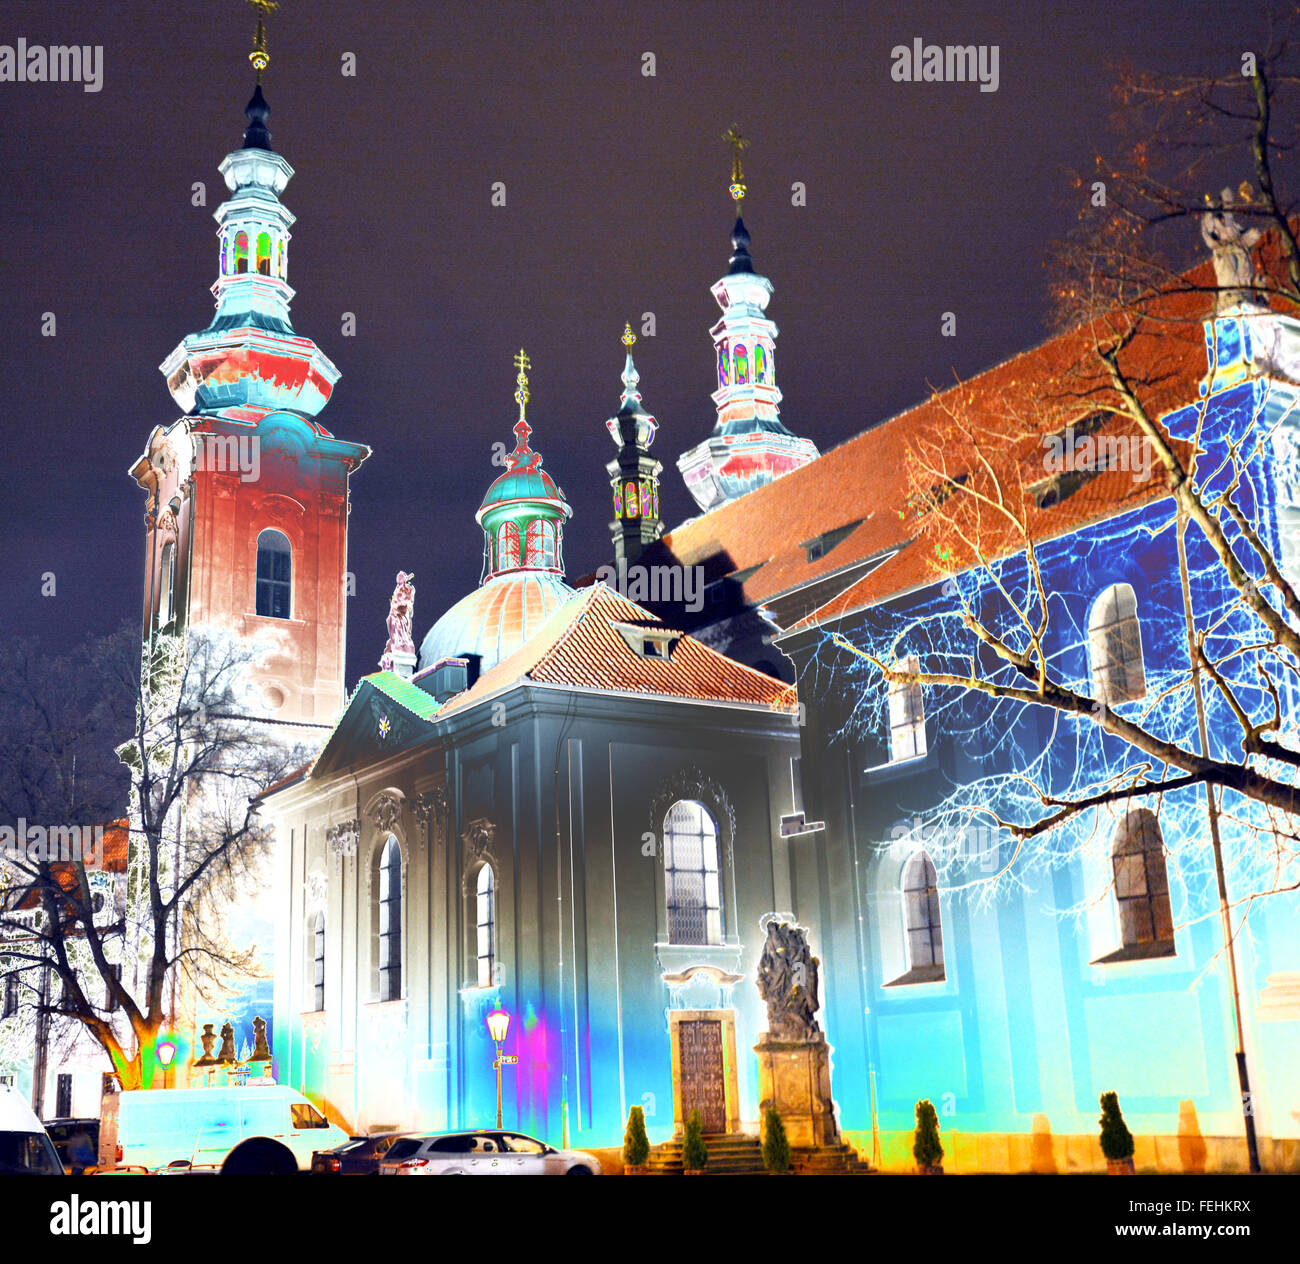 Prague Castle Church stylised image with overblown lighting - Stock Image